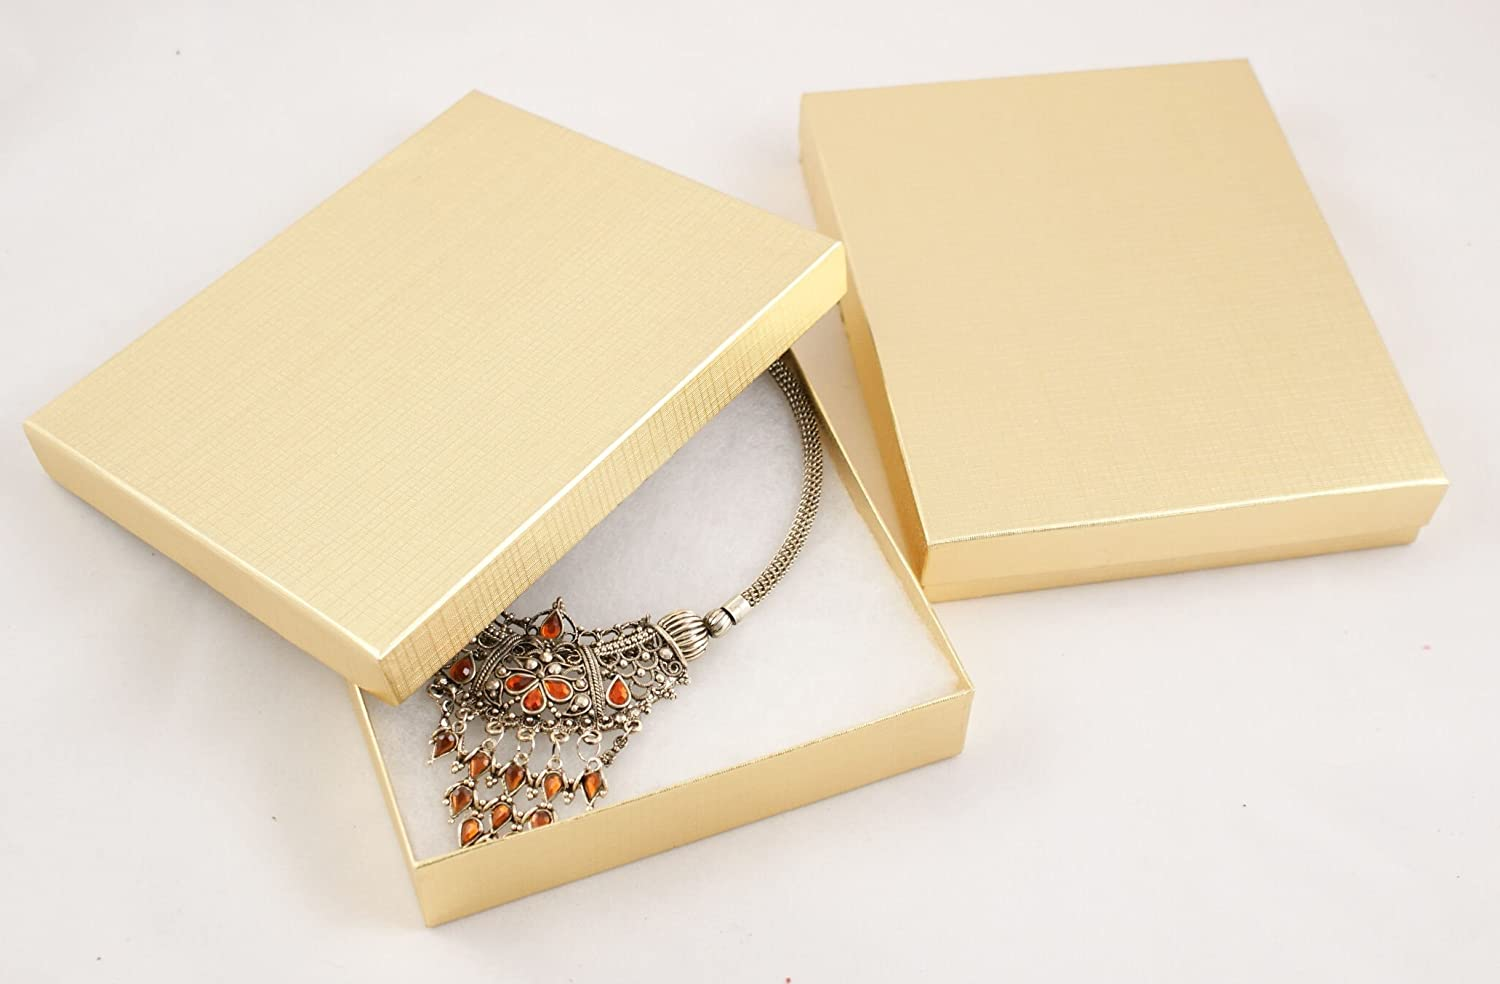 Cotton Filled Gold Linen Multi Purpose Purpose Purpose Necklace Sets Box - BD65 from 0 49 each B004WKJL54 | Creative